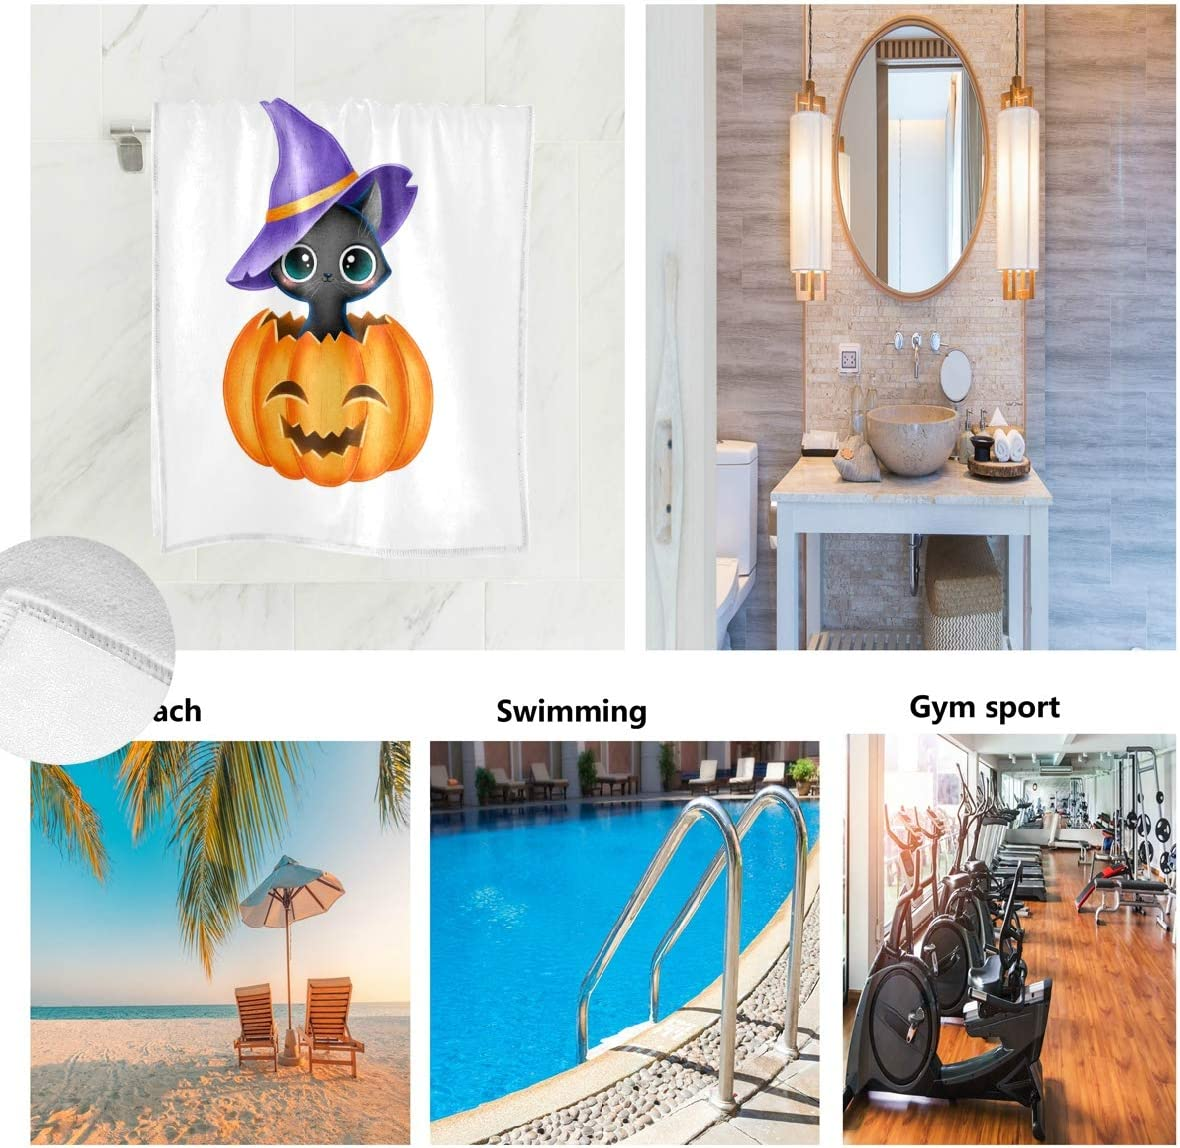 Not Applicable Pumpkin in A Witch Hat Halloween Face Towel,Hand Towel,Kitchen Towels-Dish 3D Design Pattern Towel,Towels for The Kitchen,Cleaning,Cooking,Baking